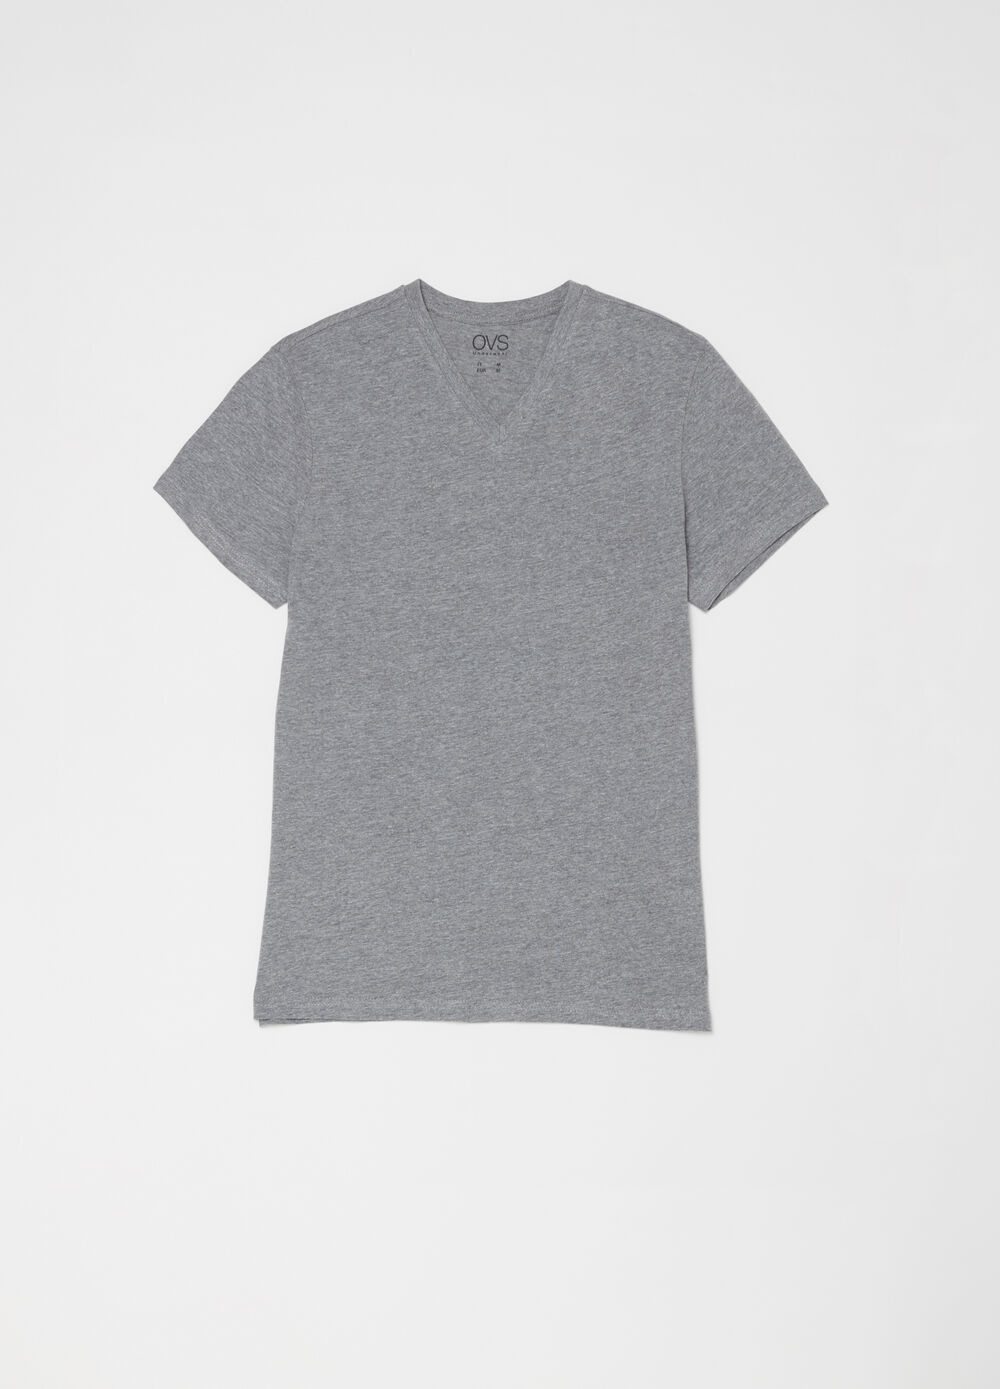 Cotton and viscose T-shirt with V neck